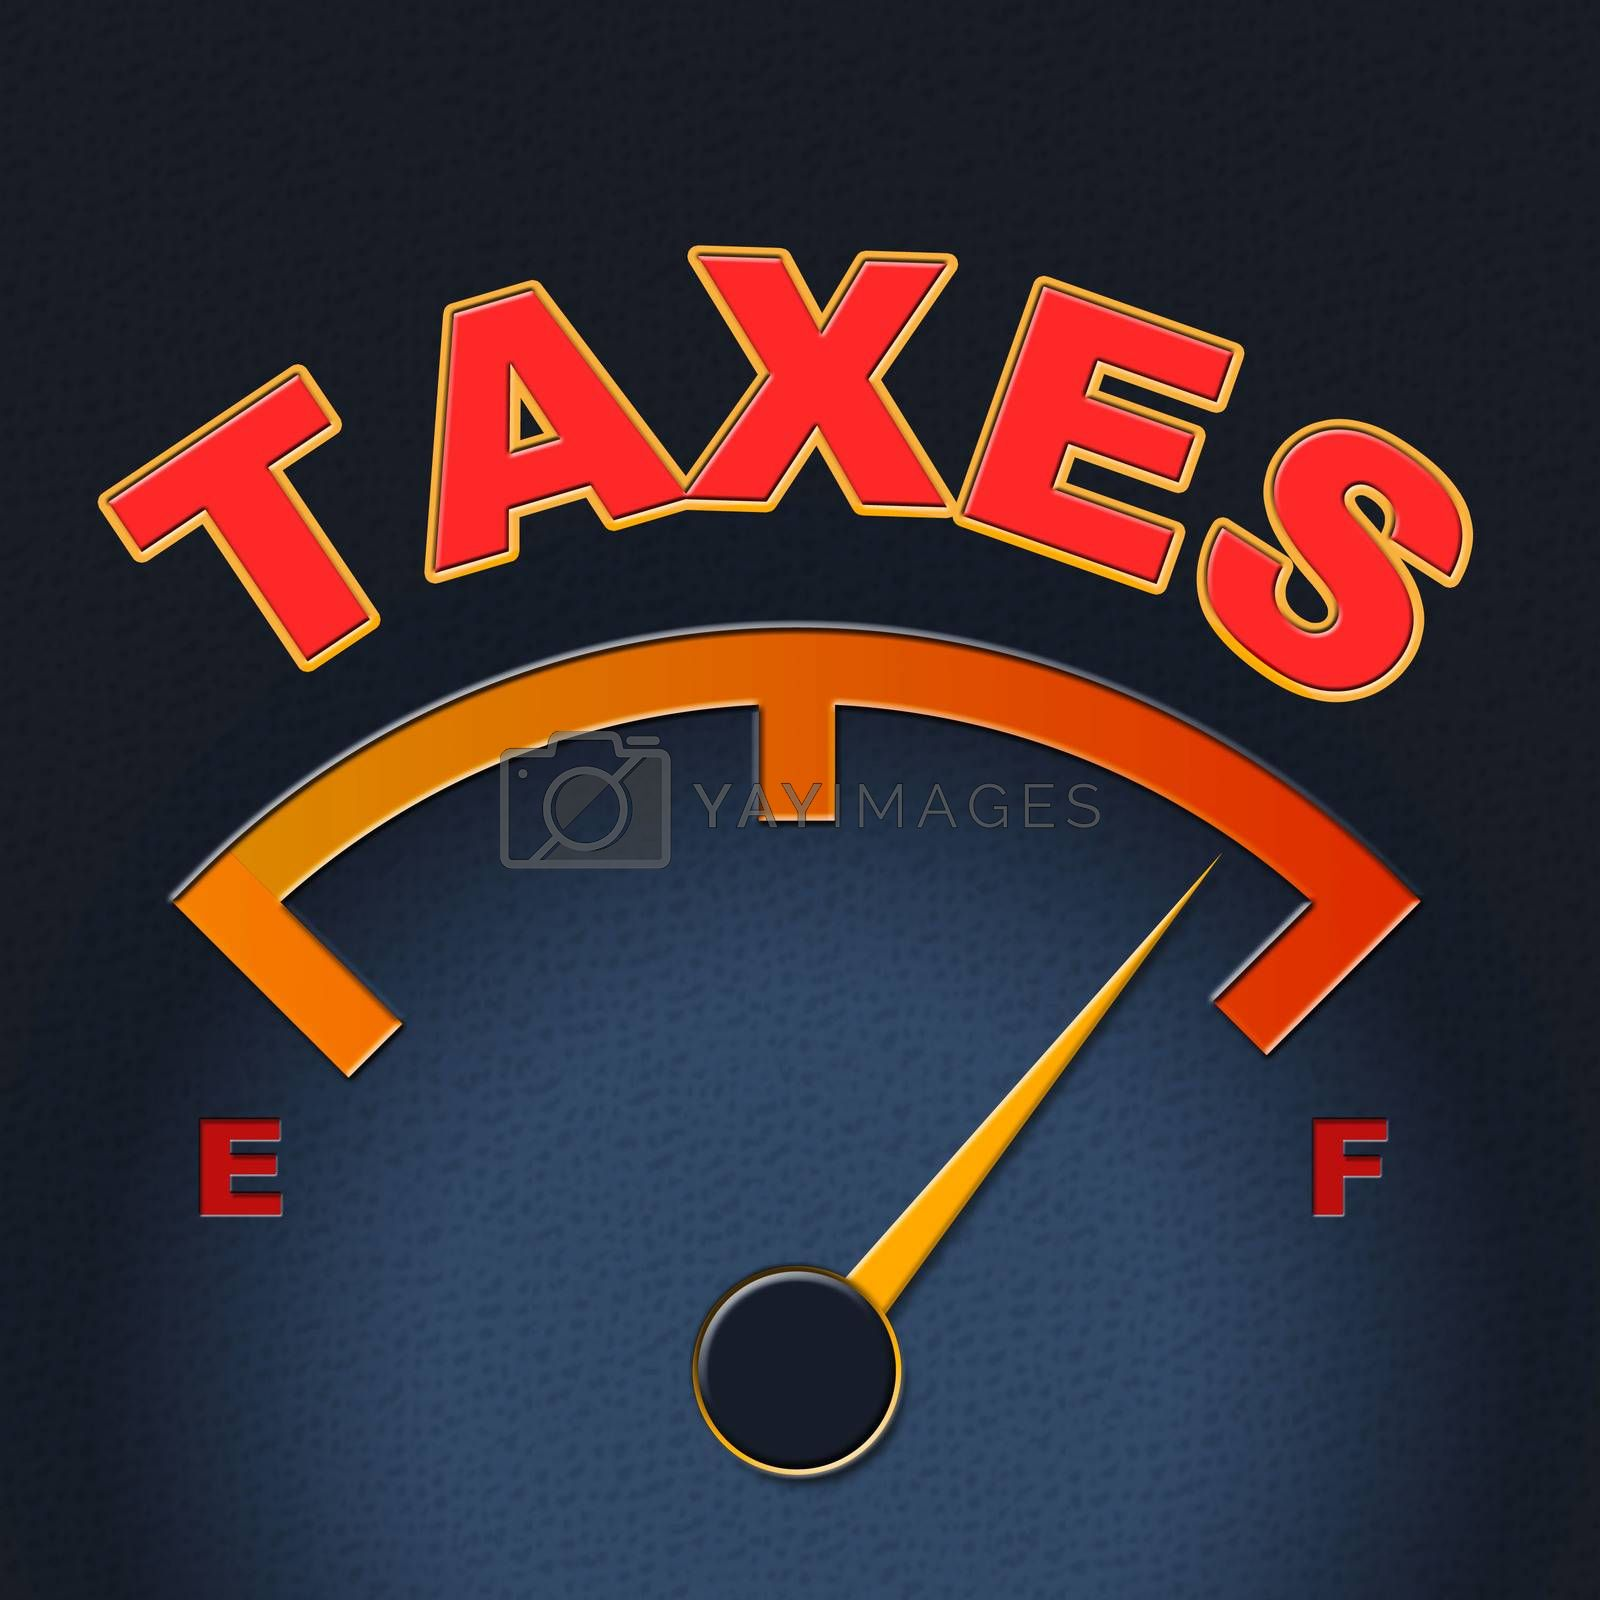 Taxes Gauge Represents Irs Duties And Taxation by stuartmiles